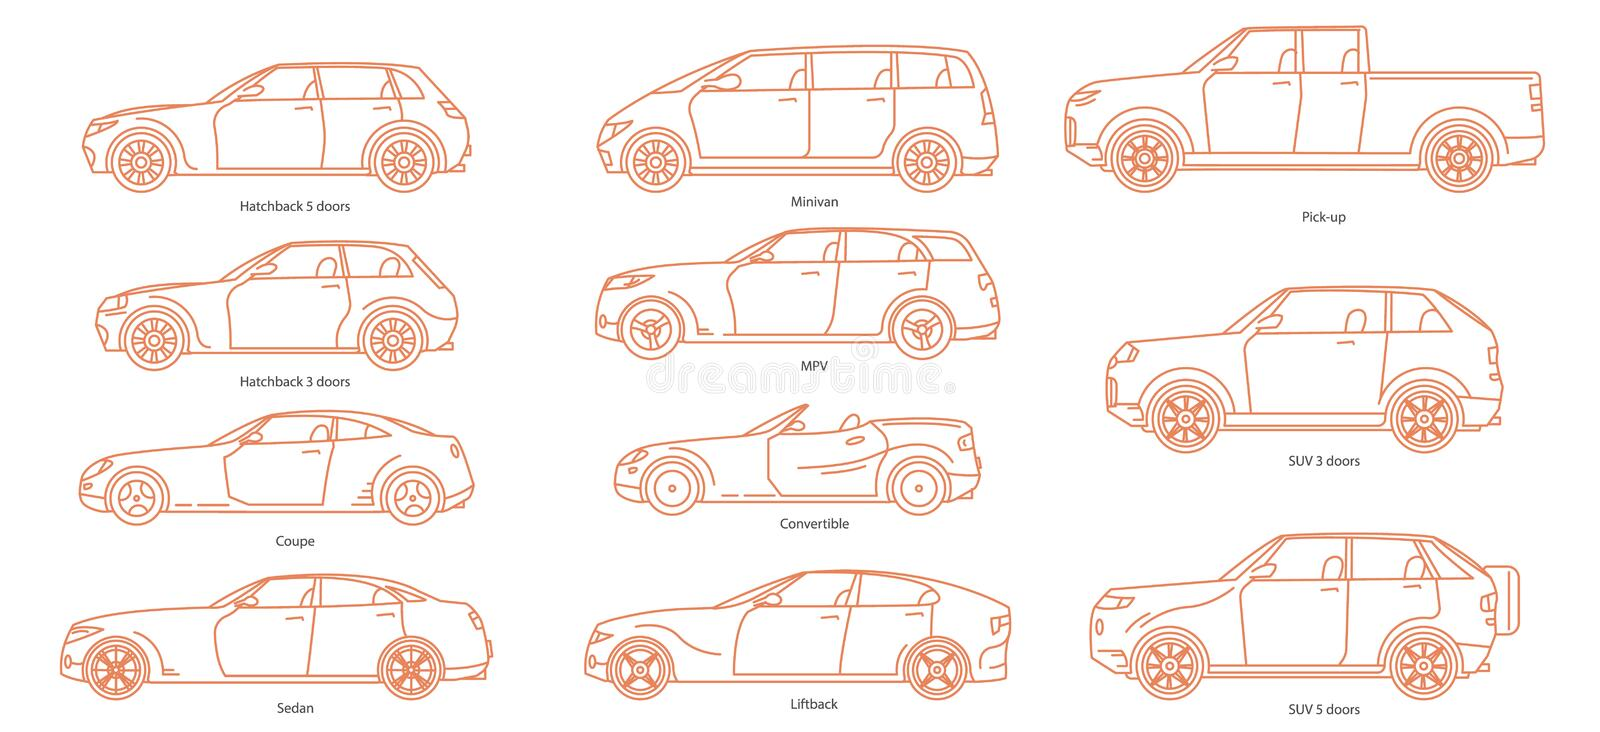 Car body style. Passenger Coupe. Outline Pickup Sedan Hatchback and Convertible SUV Minivan MPV. Three and five-door stock illustration